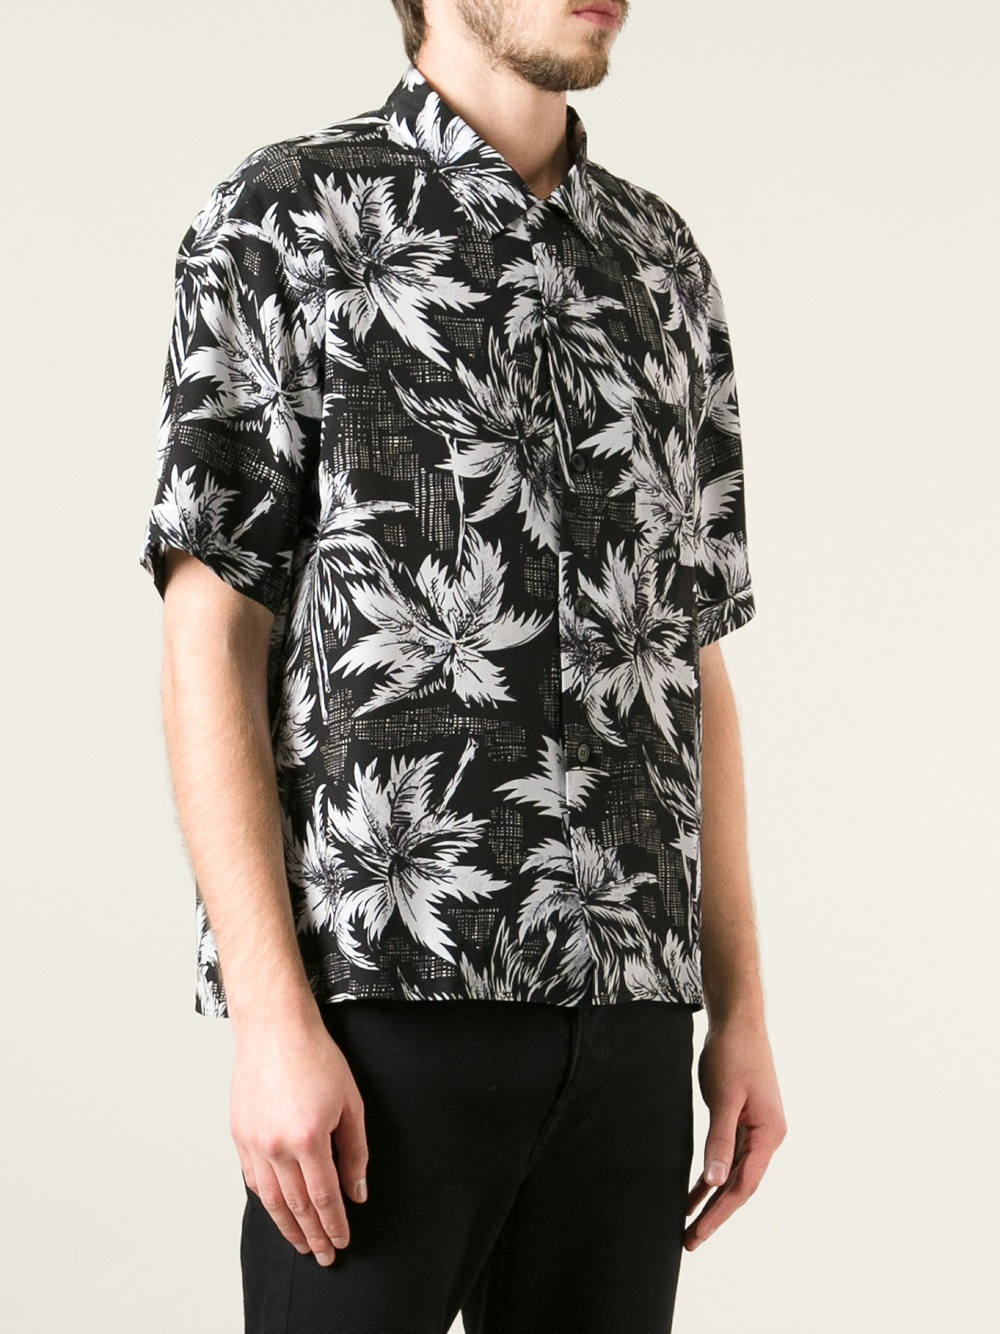 Saint laurent Hawaiian Flower Printed Shirt in Black for Men | Lyst